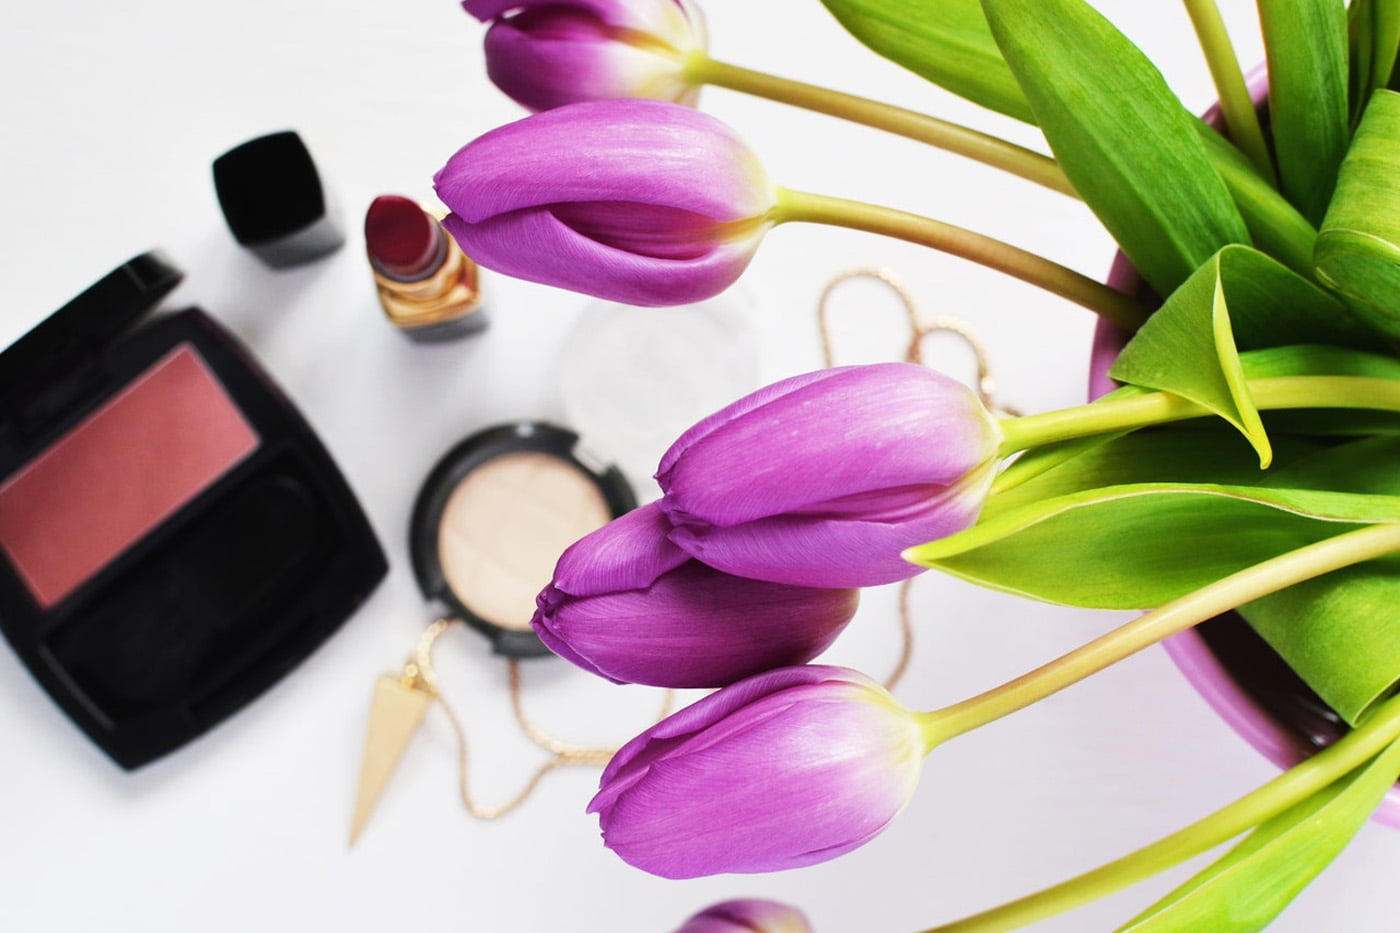 10 Amazon Prime Day Beauty Deals You Have To See